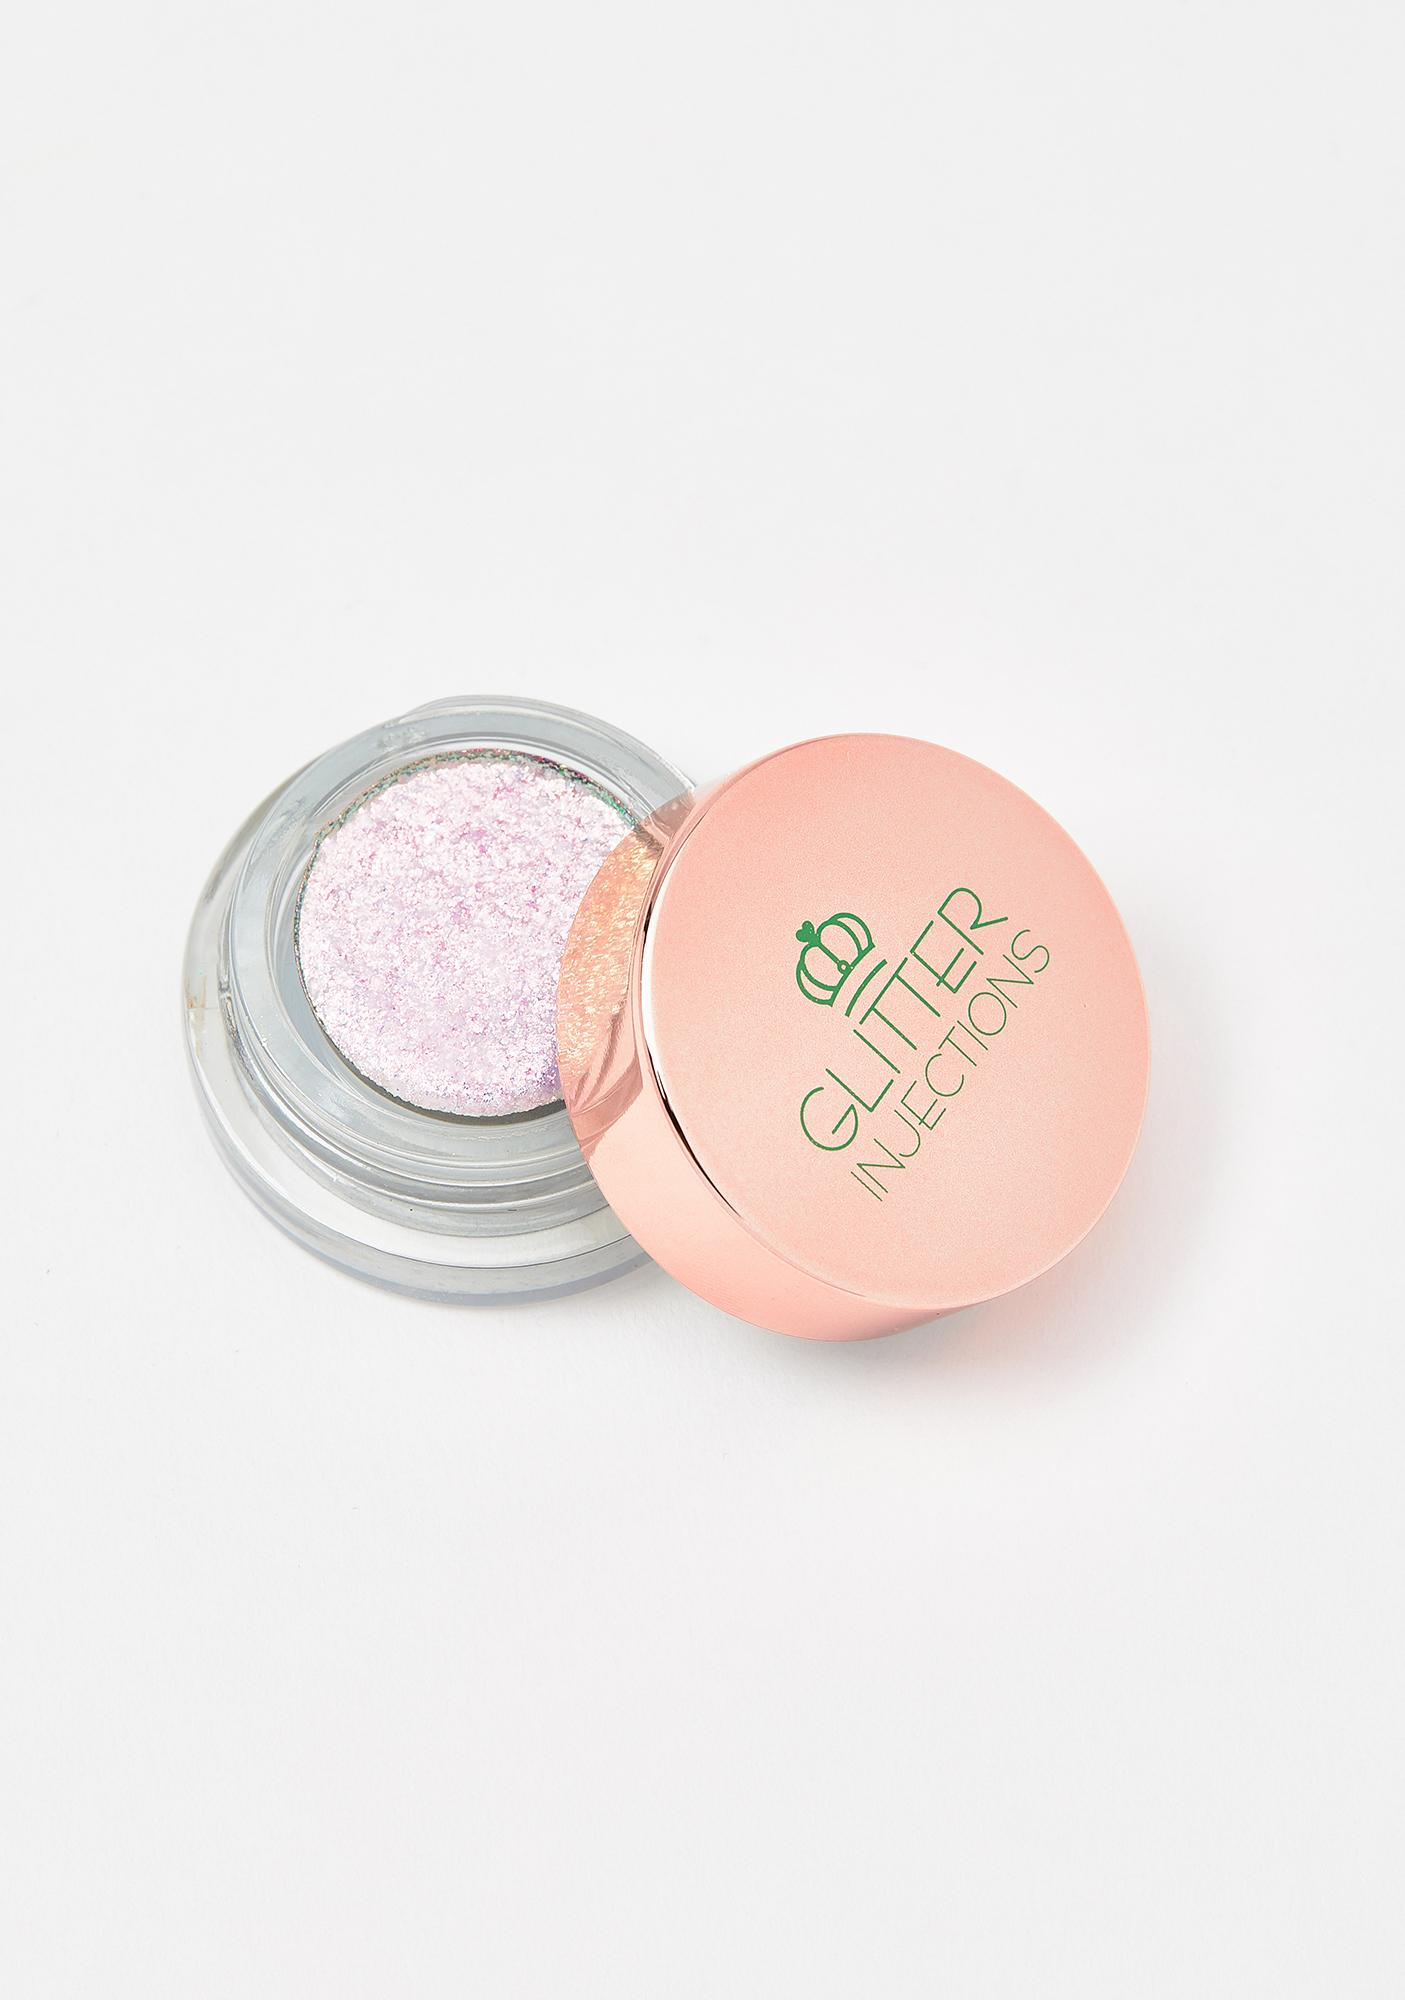 Glitter Injections Mermaid Dew Invisapearl Highlighter